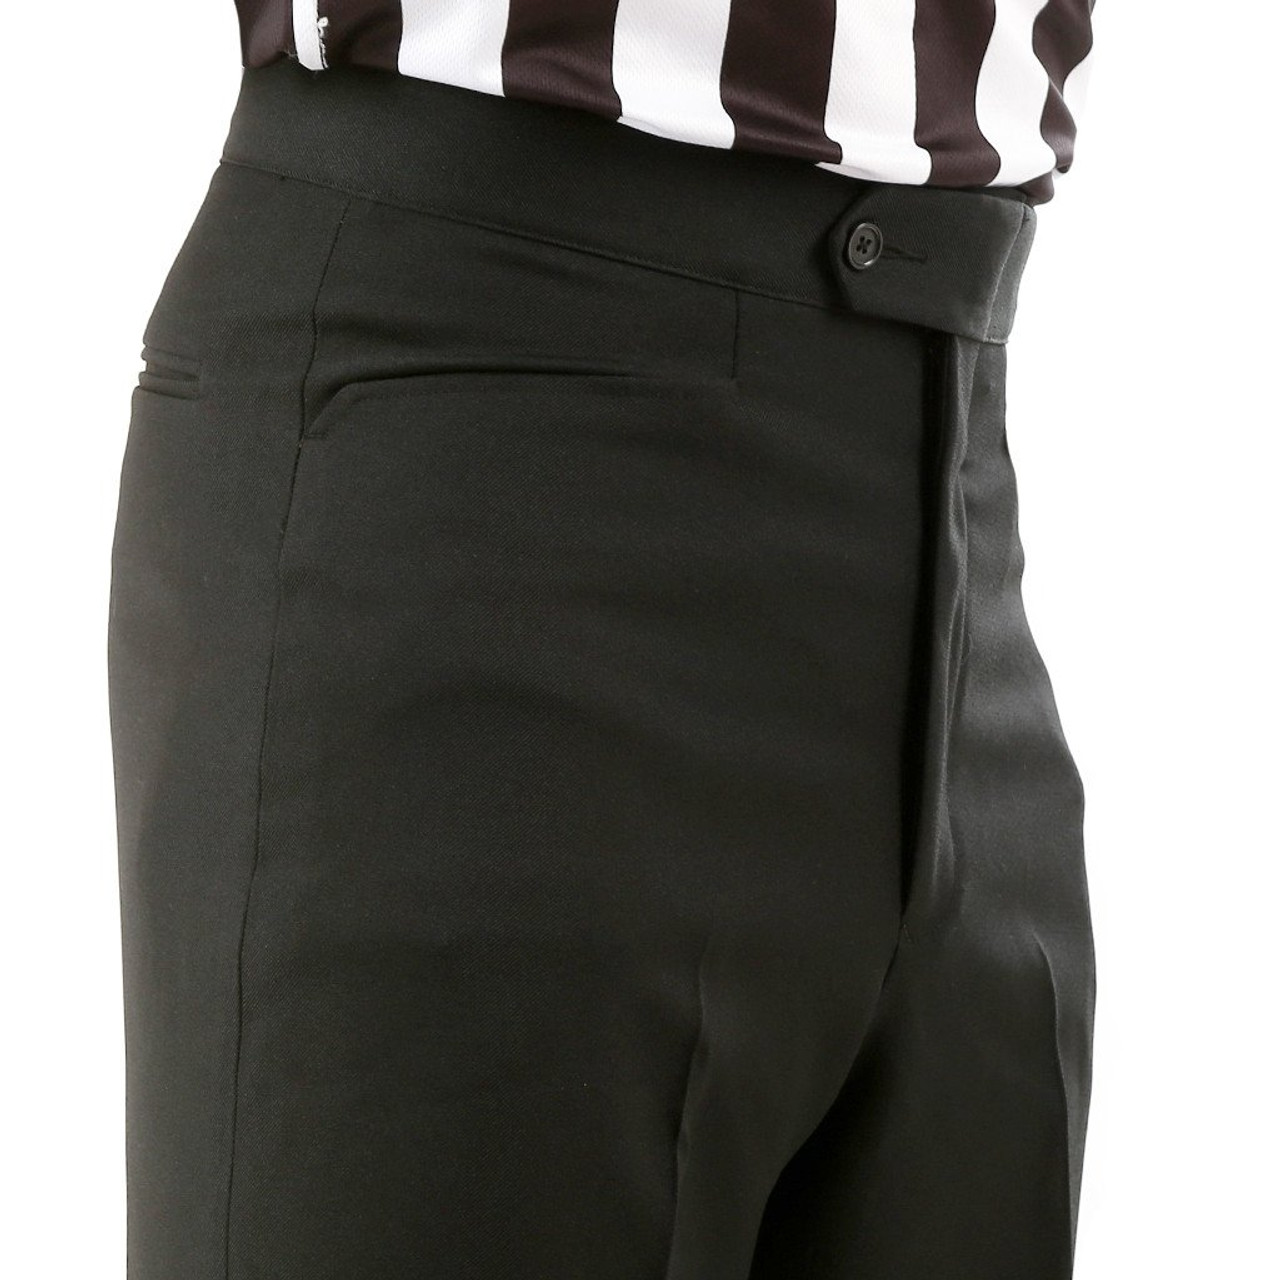 Referees Choice Western Pockets BKS-282 Smitty Womens 4-Way Stretch Flat Front Officials Pants Basketball Wrestling